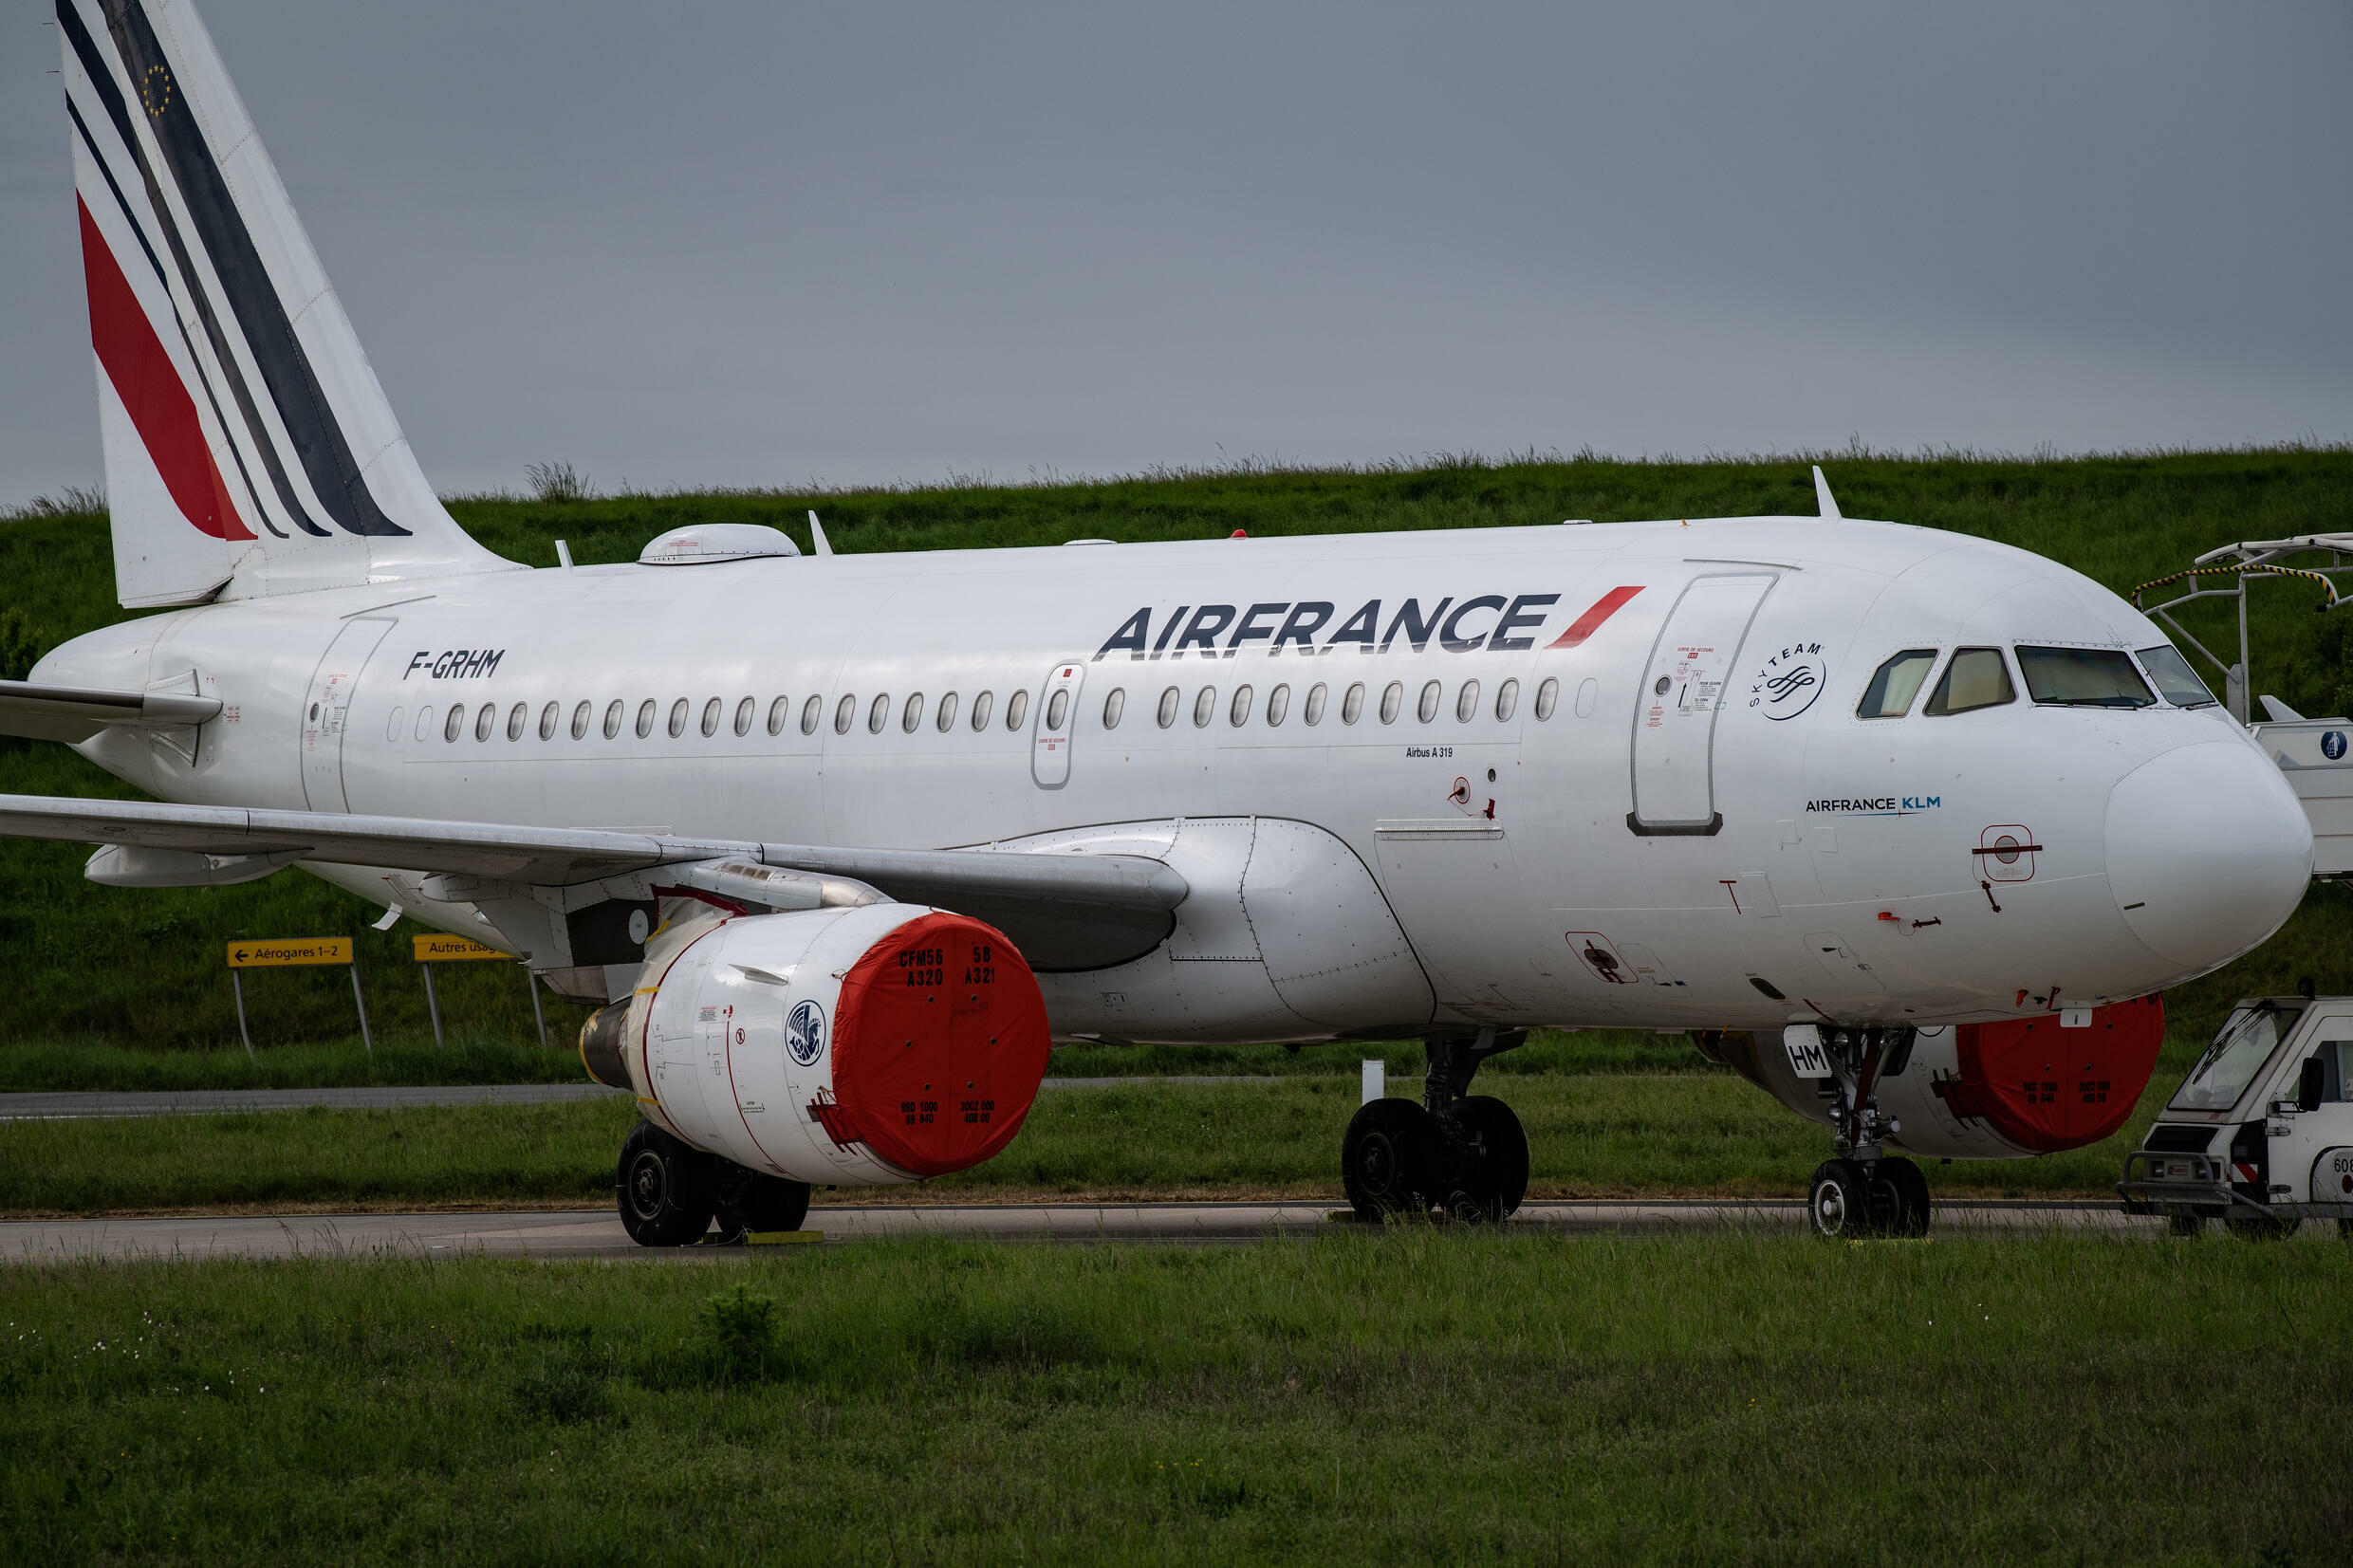 Air France, like most airlines, took most of its planes out of service at their height of the Covid-19 pandemic and parked them on the tarmac